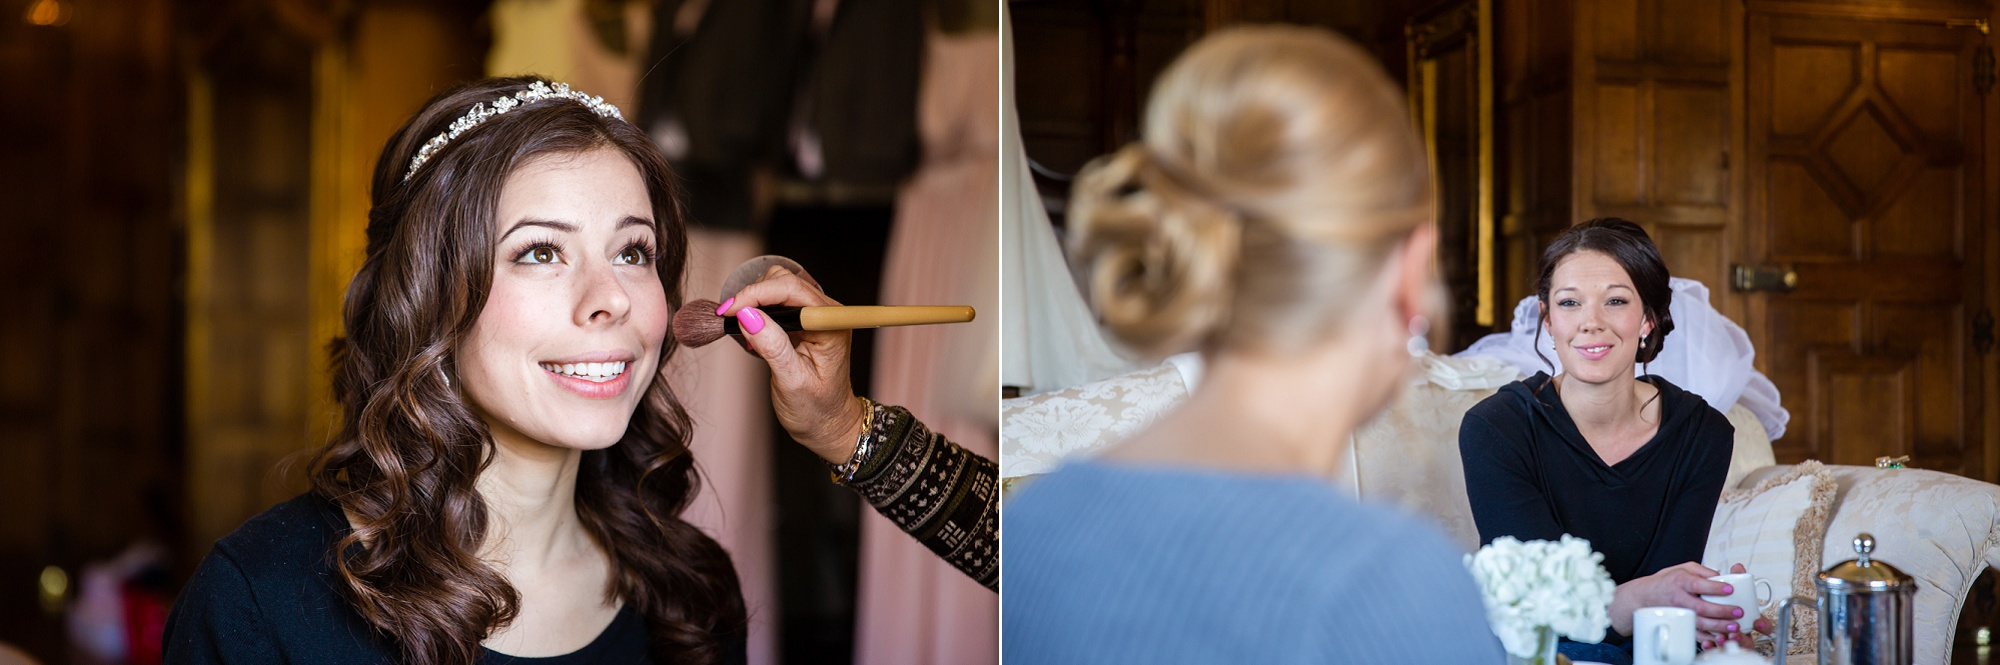 bride and her friends get ready for her Hengrave Hall Wedding